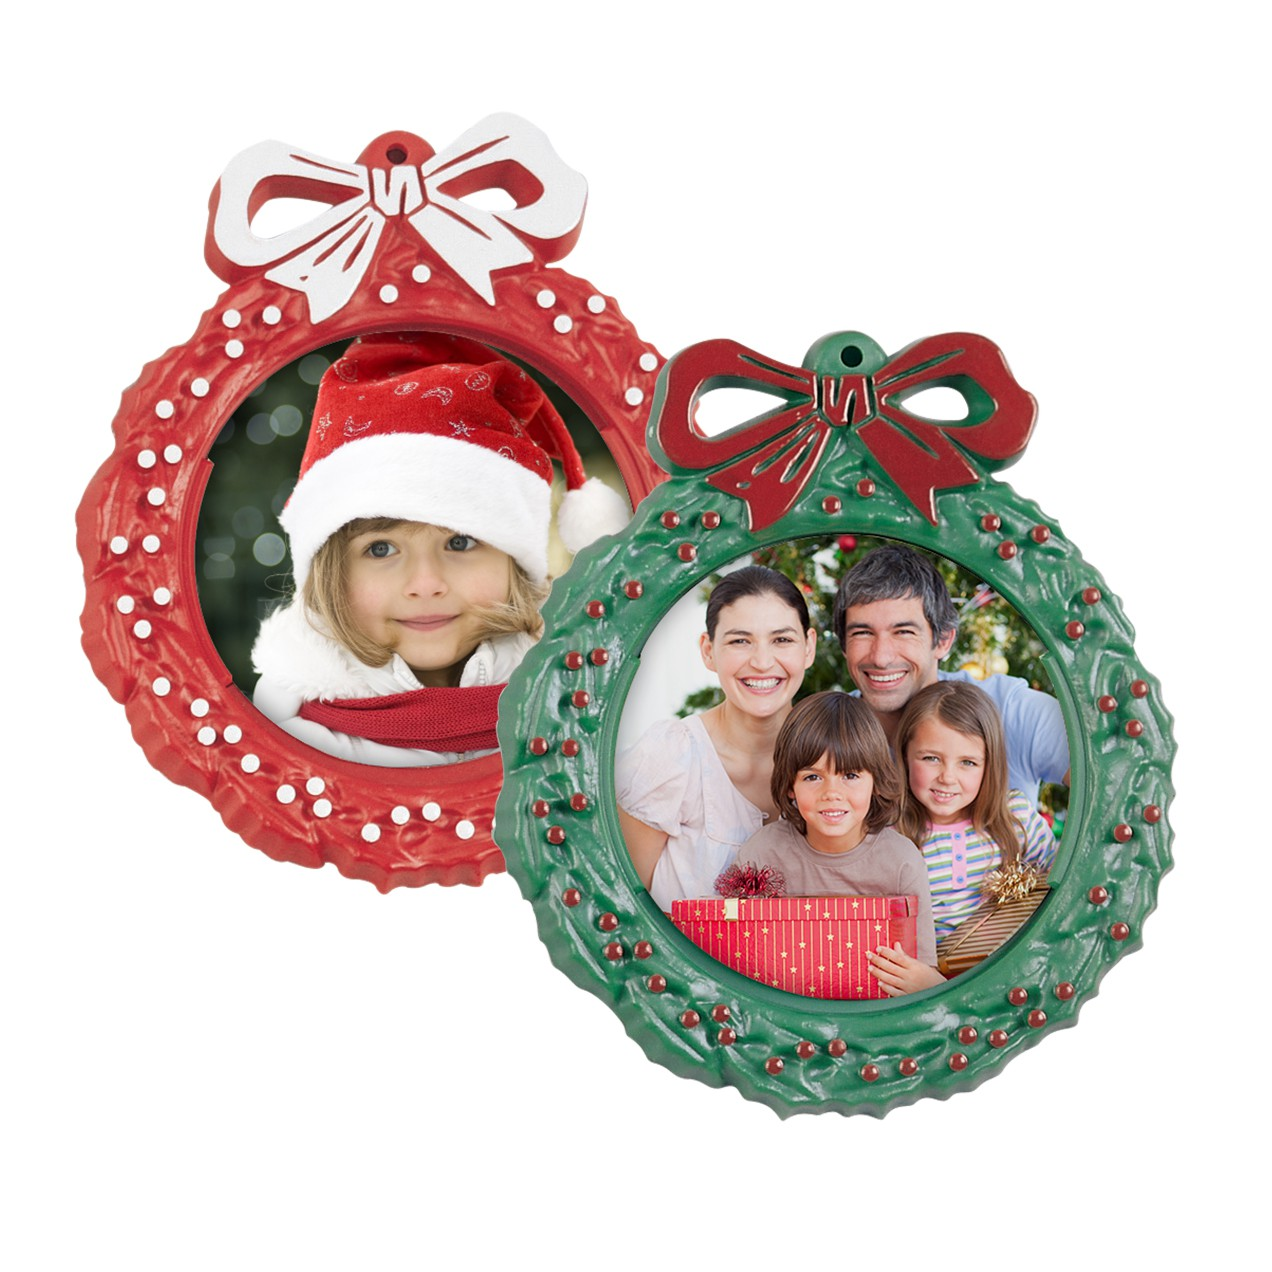 Holiday Christmas Wholesale Ornaments Photo Wreath Ornaments